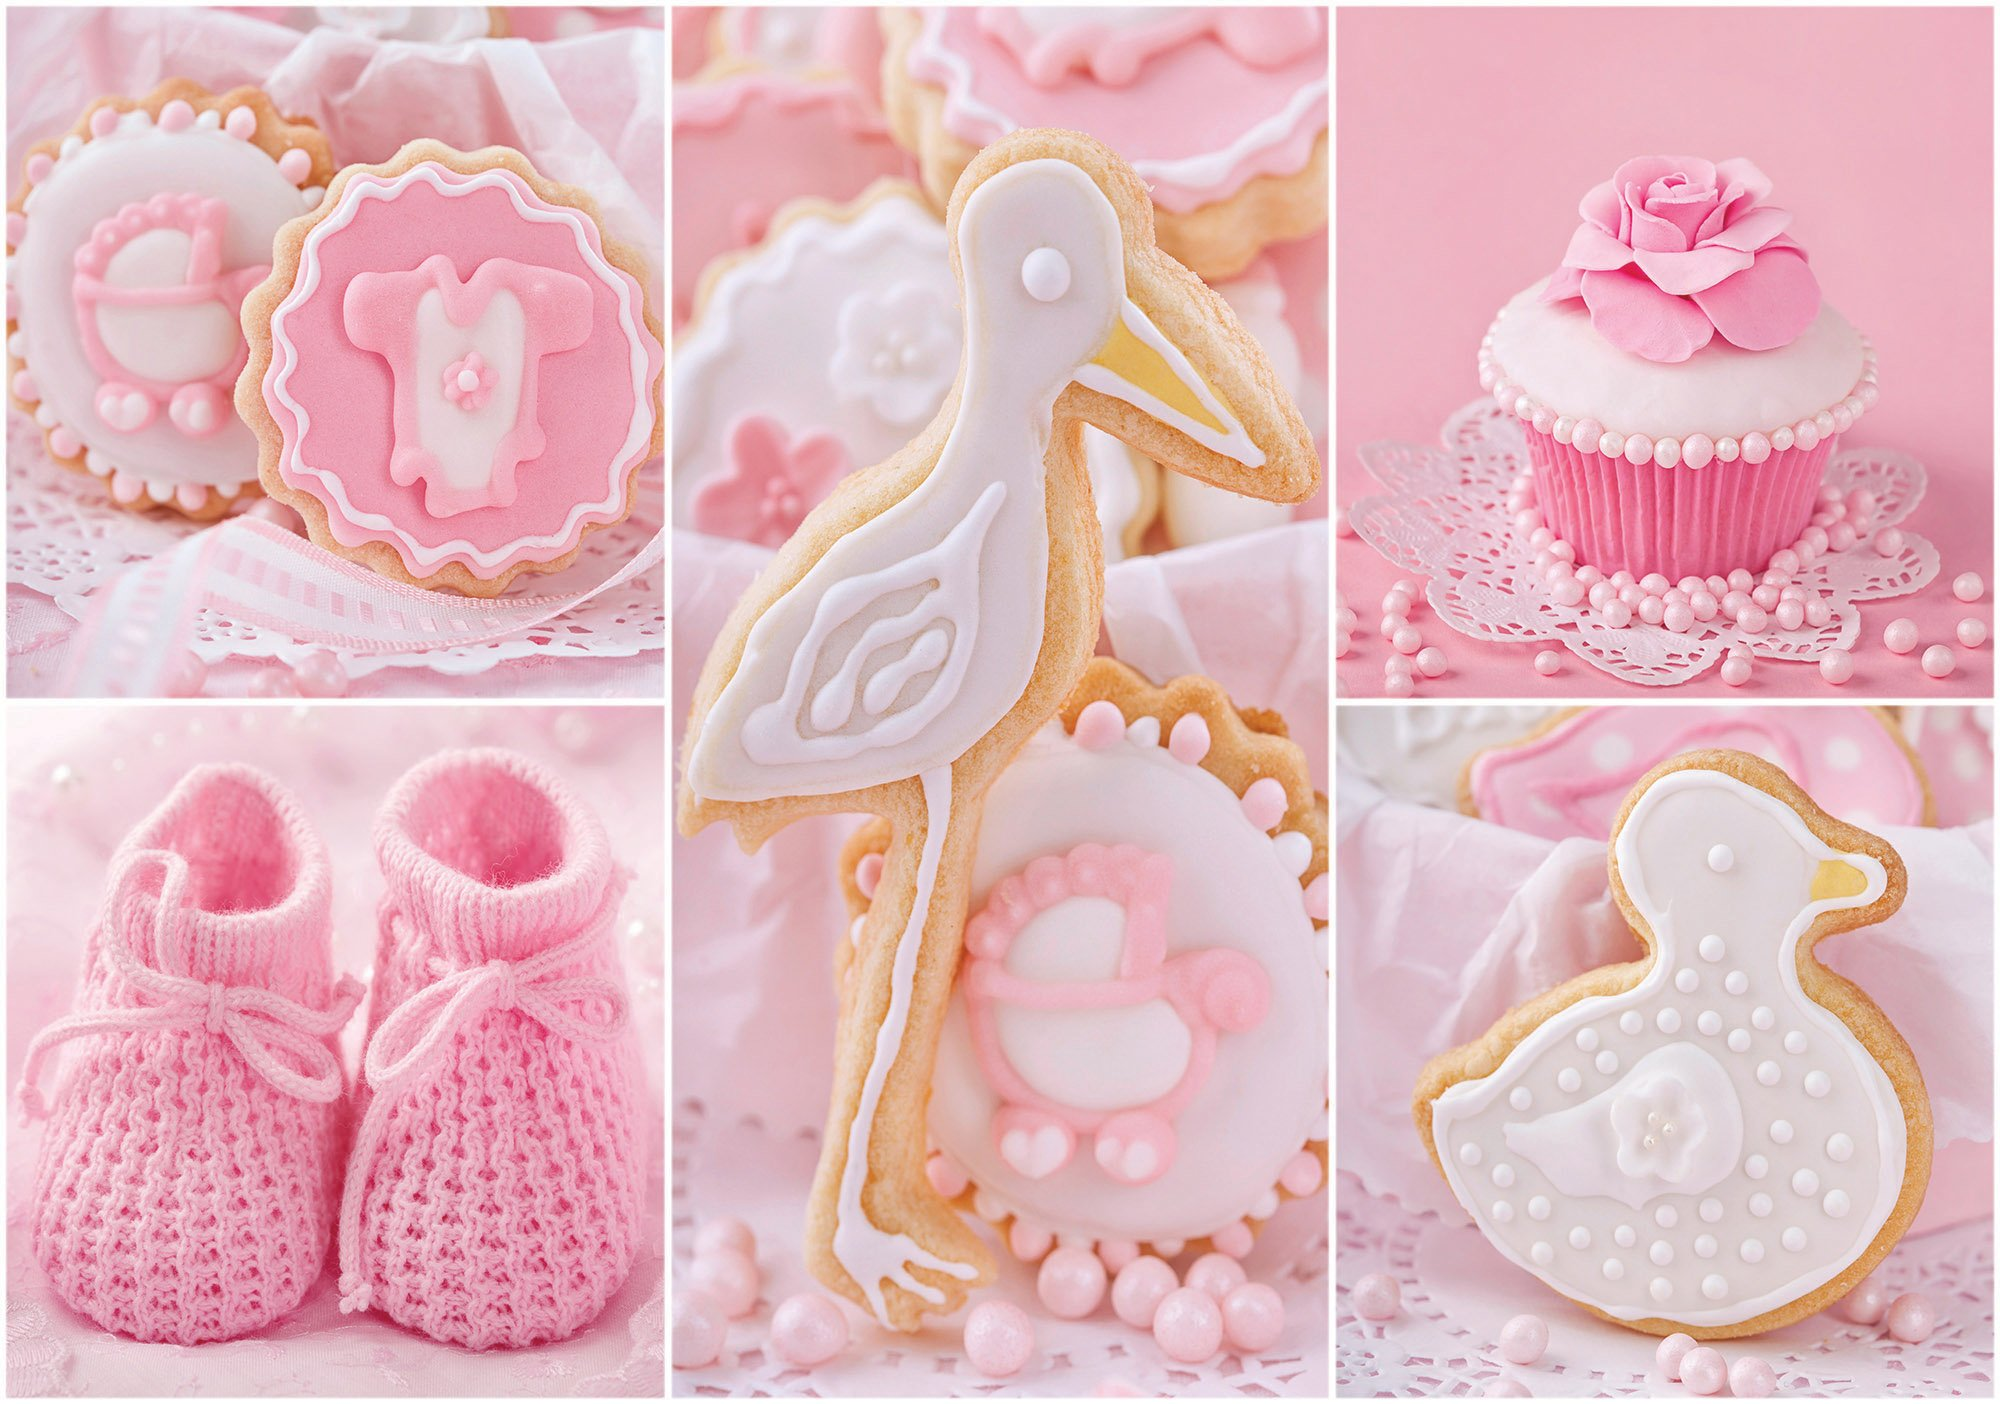 low priced ec8ca 1080a Babyschuhe und rosa Cupcakes - Forwall